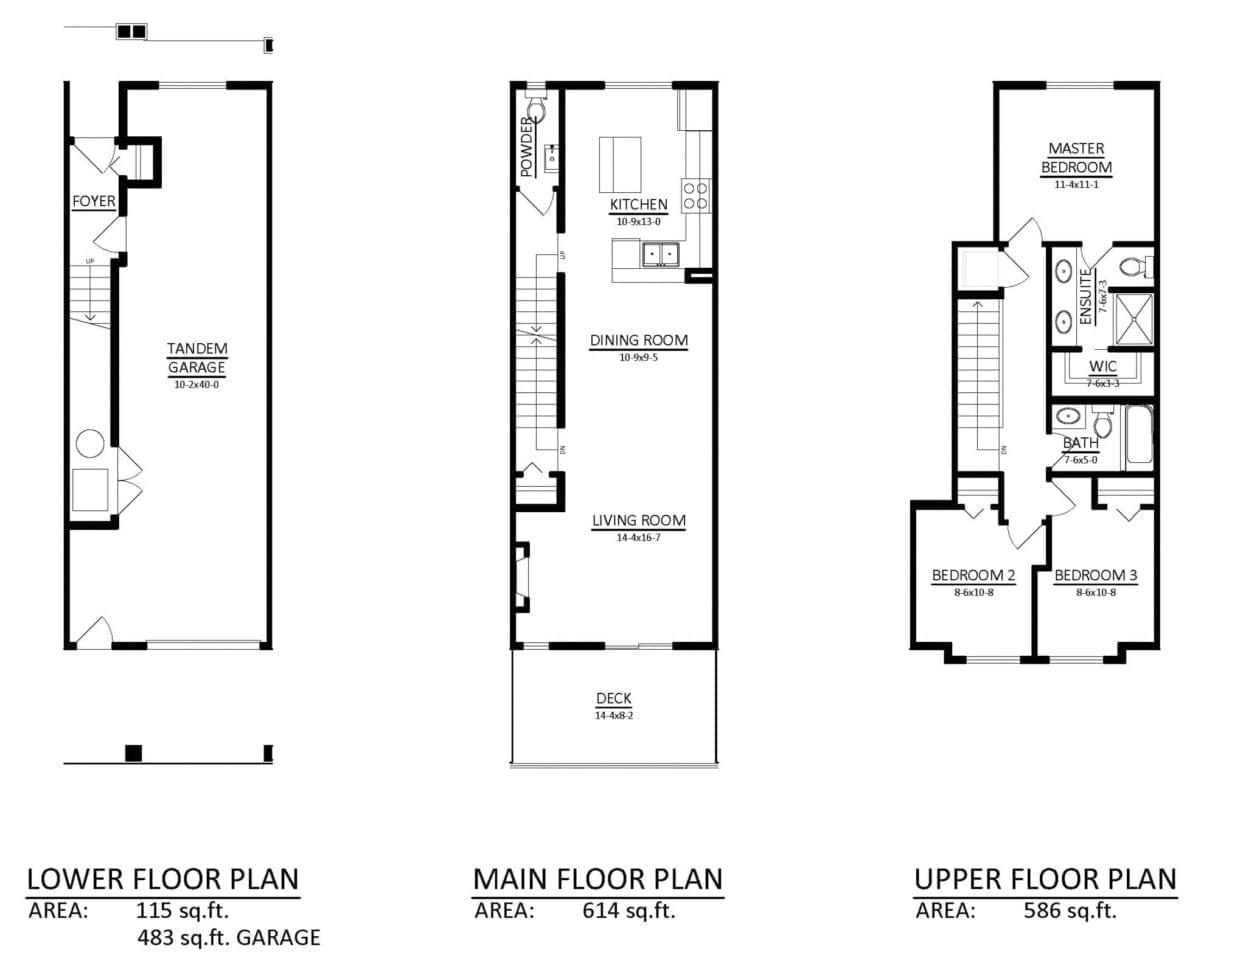 736Townhome - D-FLOORPLAN